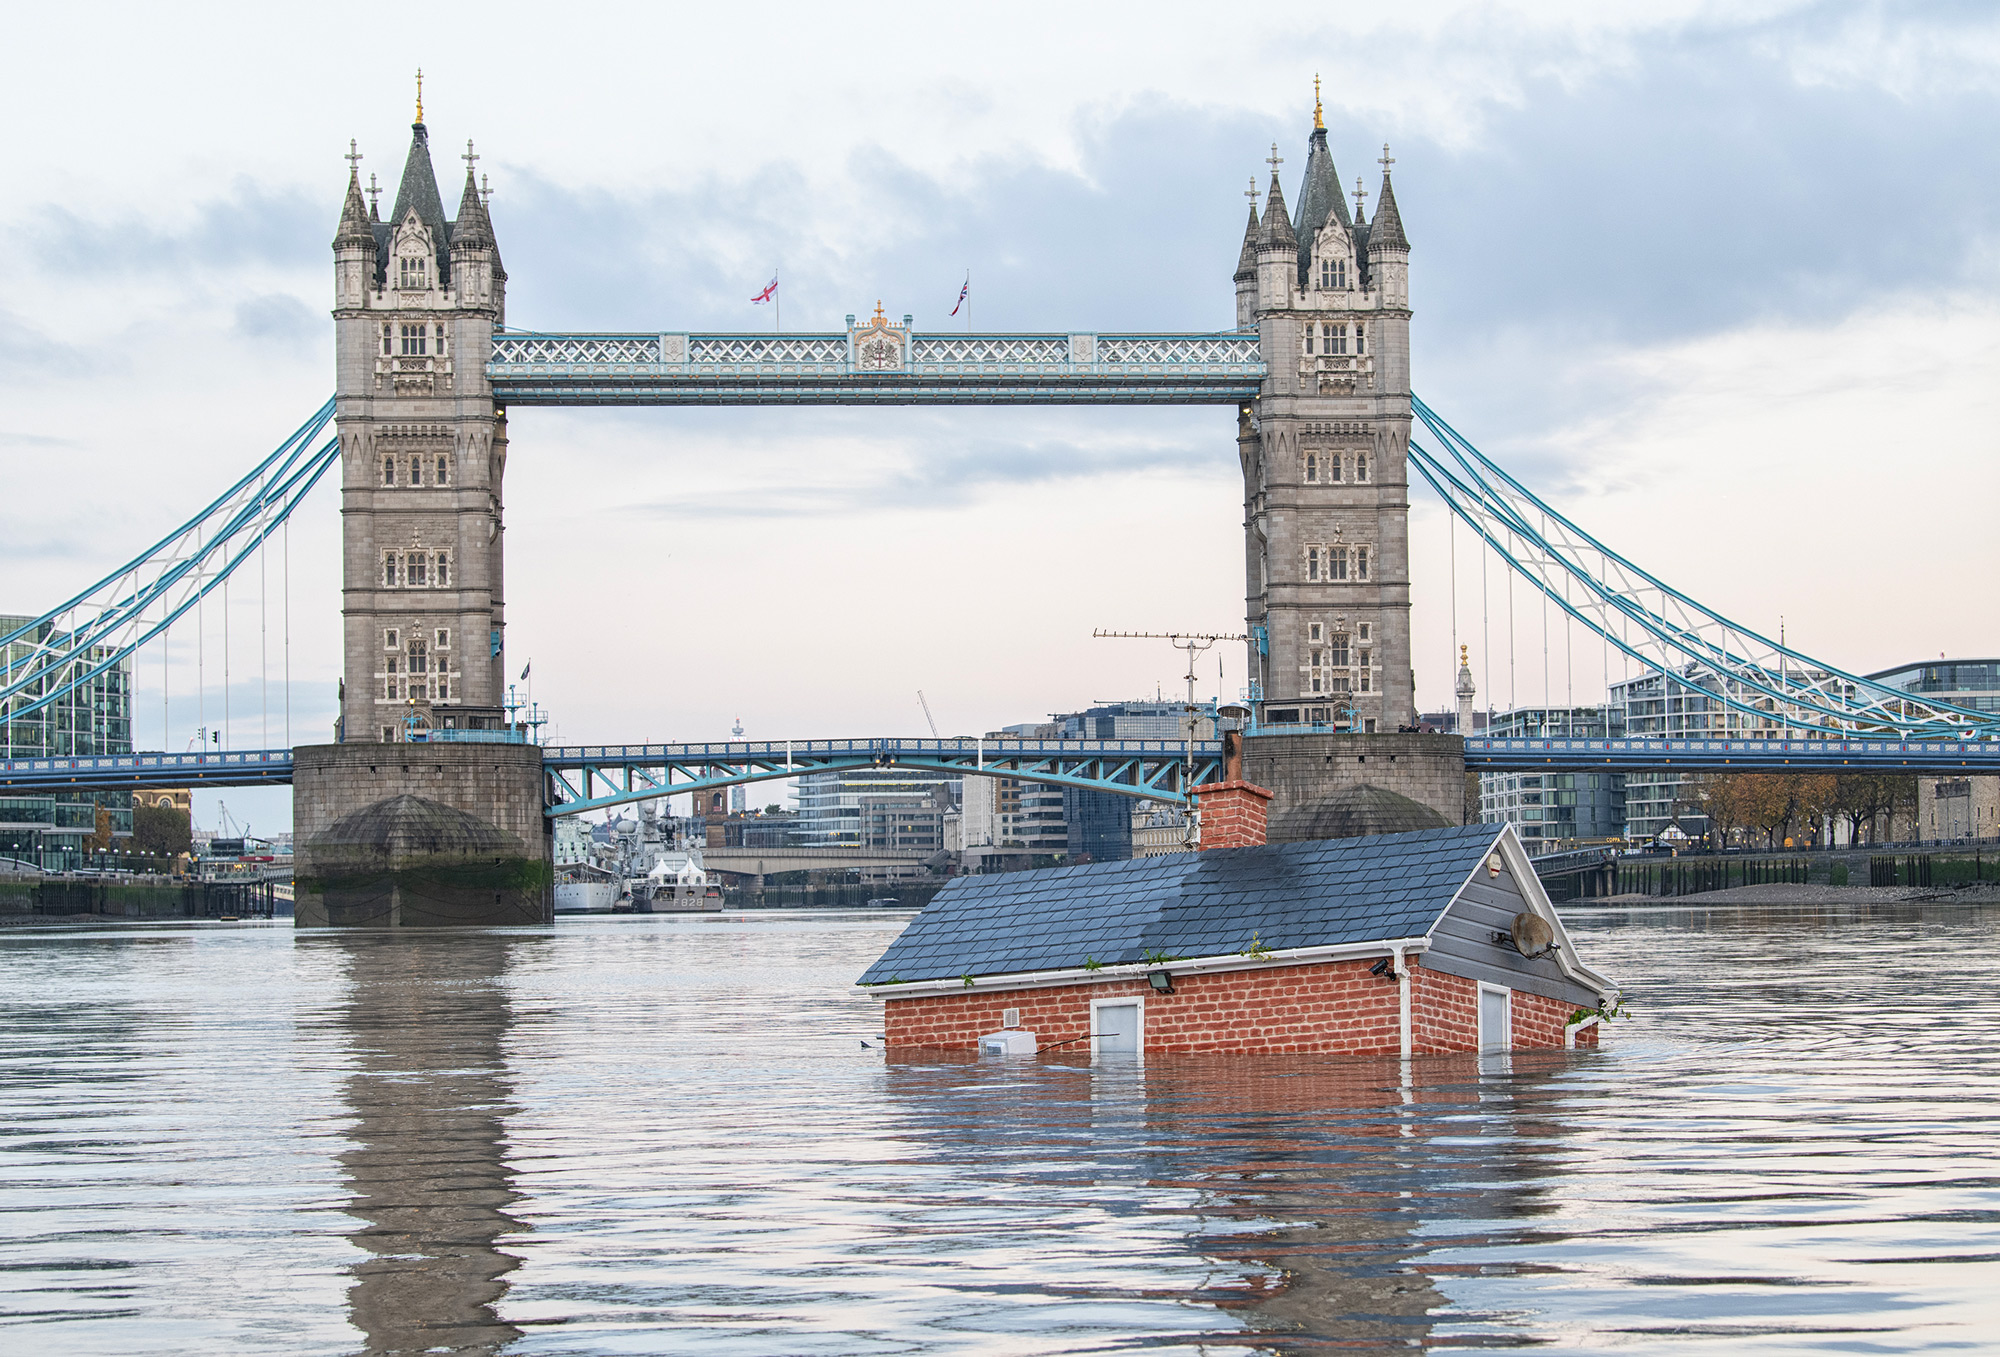 Our House is Flooding: a Semi-Submerged Life-Size Home Floats Down the River Thames